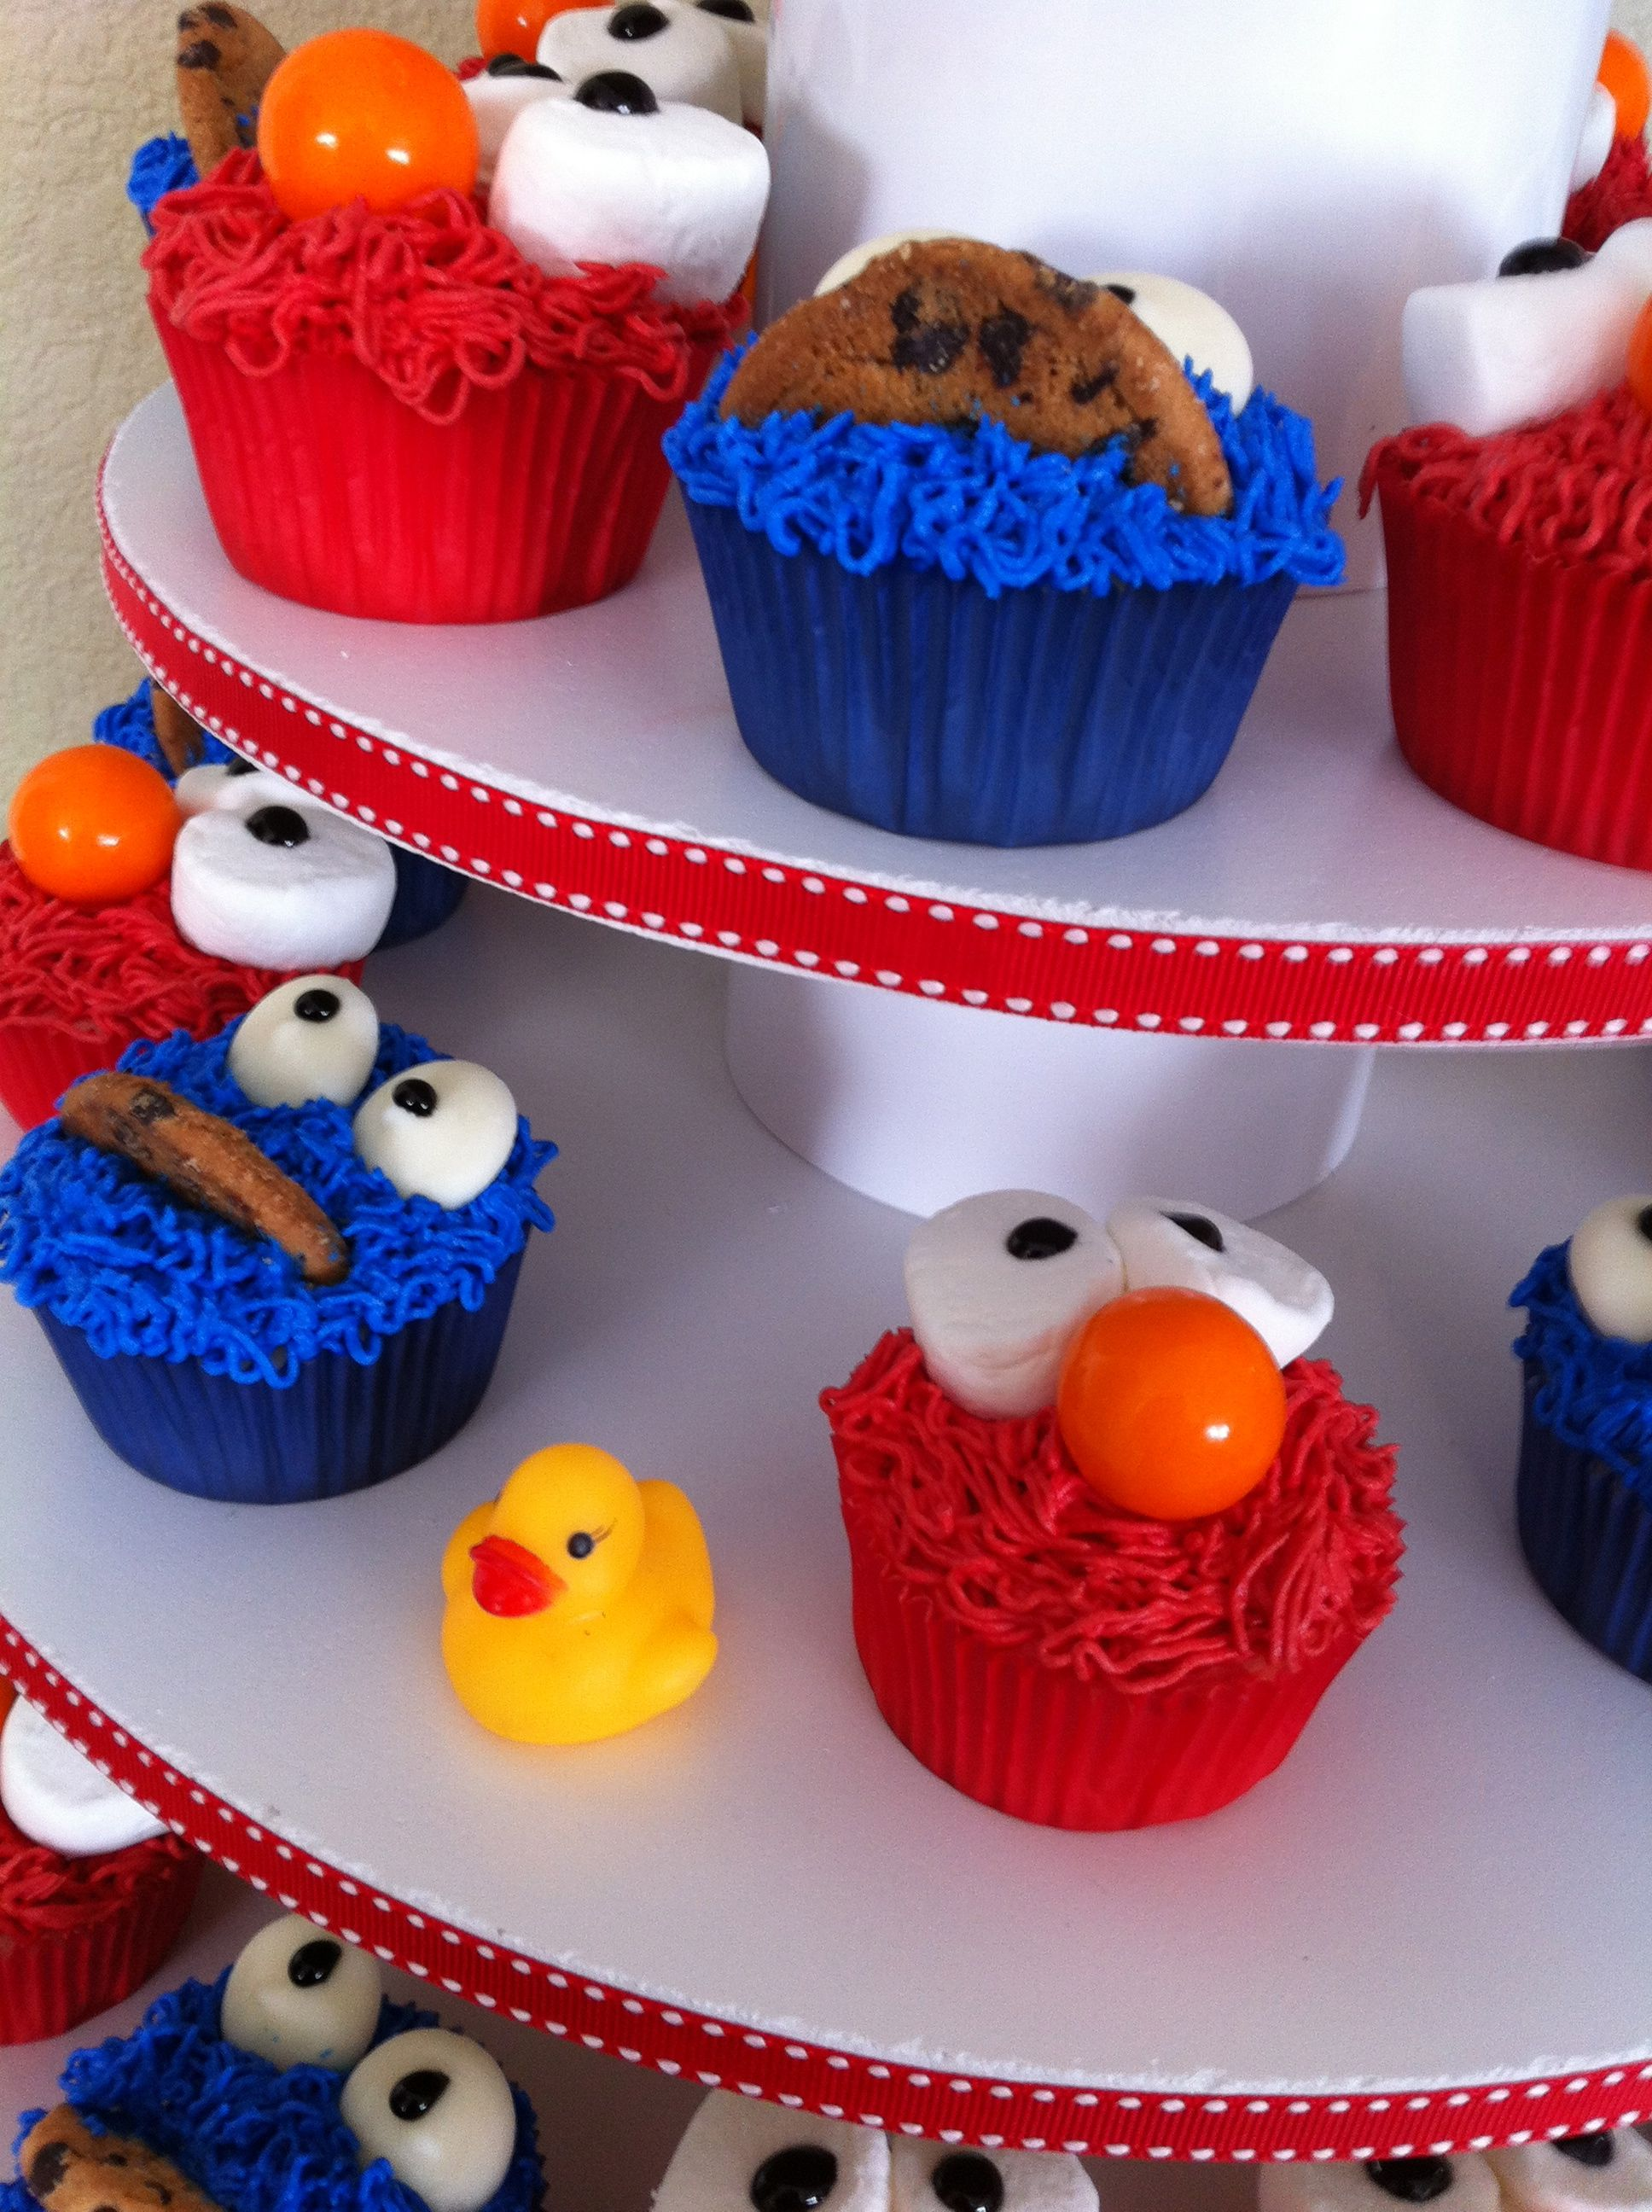 Elmo and Cookie Monster cupcakes I made for Riley's 2nd birthday party in June